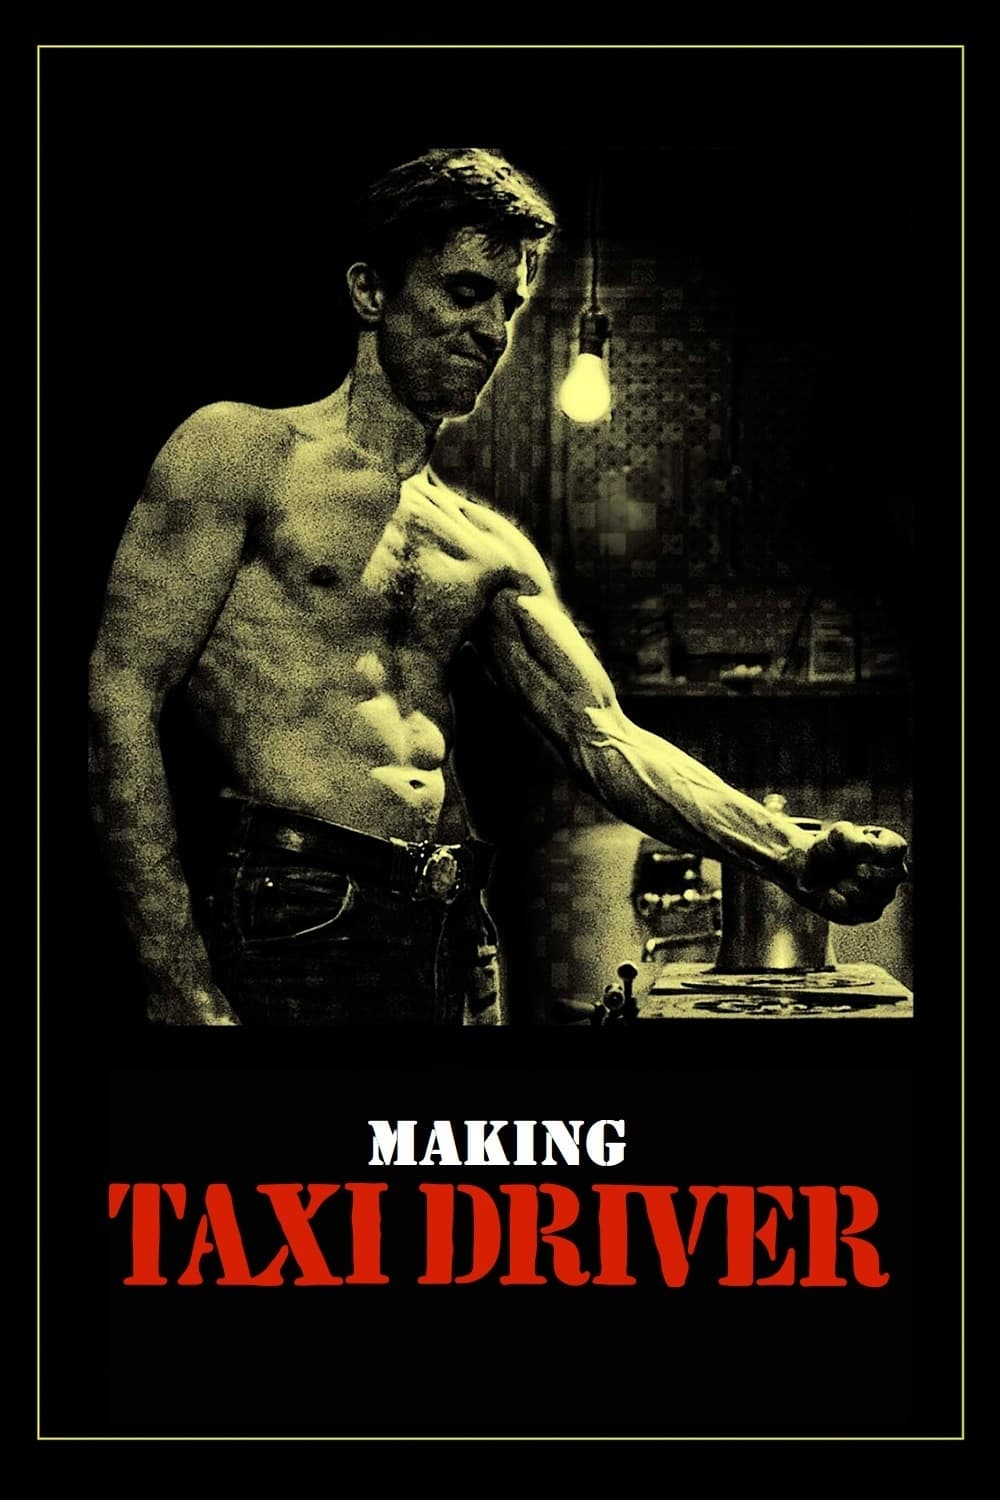 Making Taxi Driver (1999)